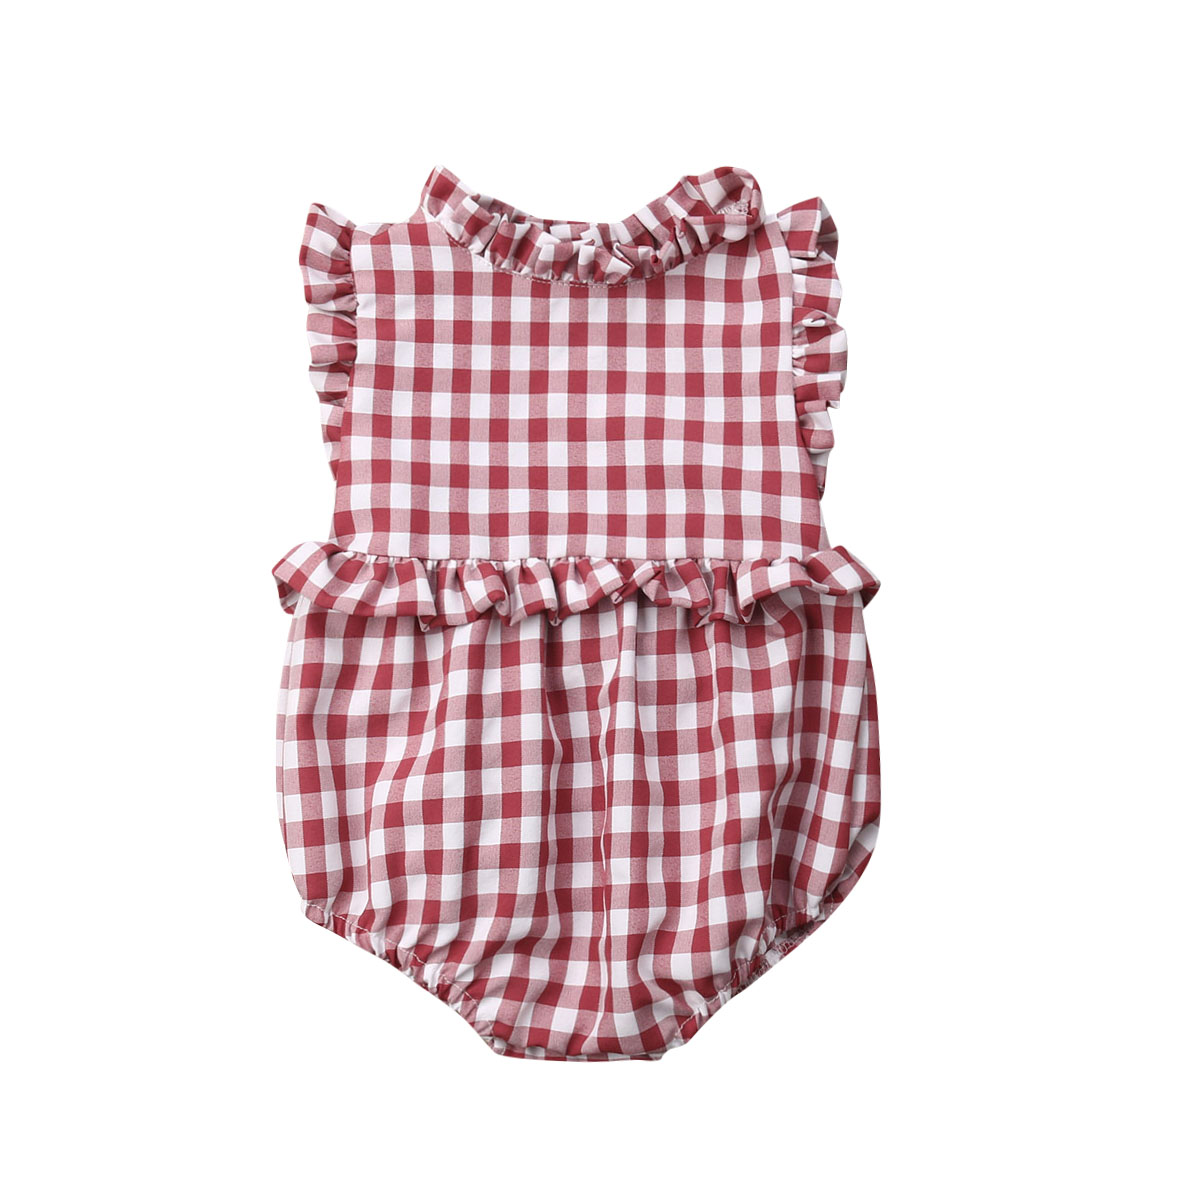 2019 Baby Girl summer clothing red Ruffle Plaid   Romper   Sunsuit Jumpsuit Outfits for newborn infant clothes children kid toddler